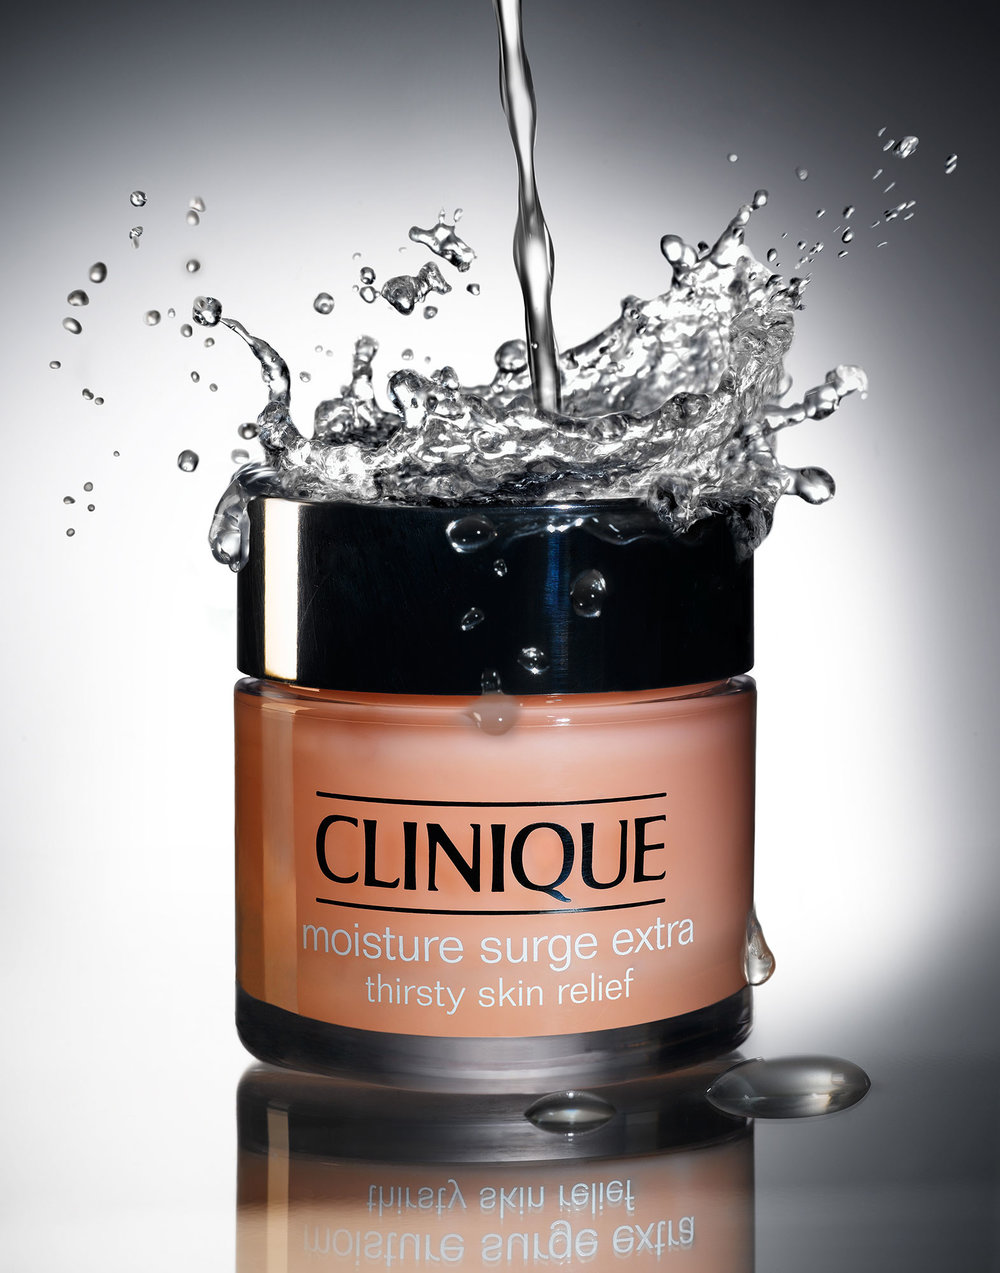 clinique11x14-1571x2000.jpg